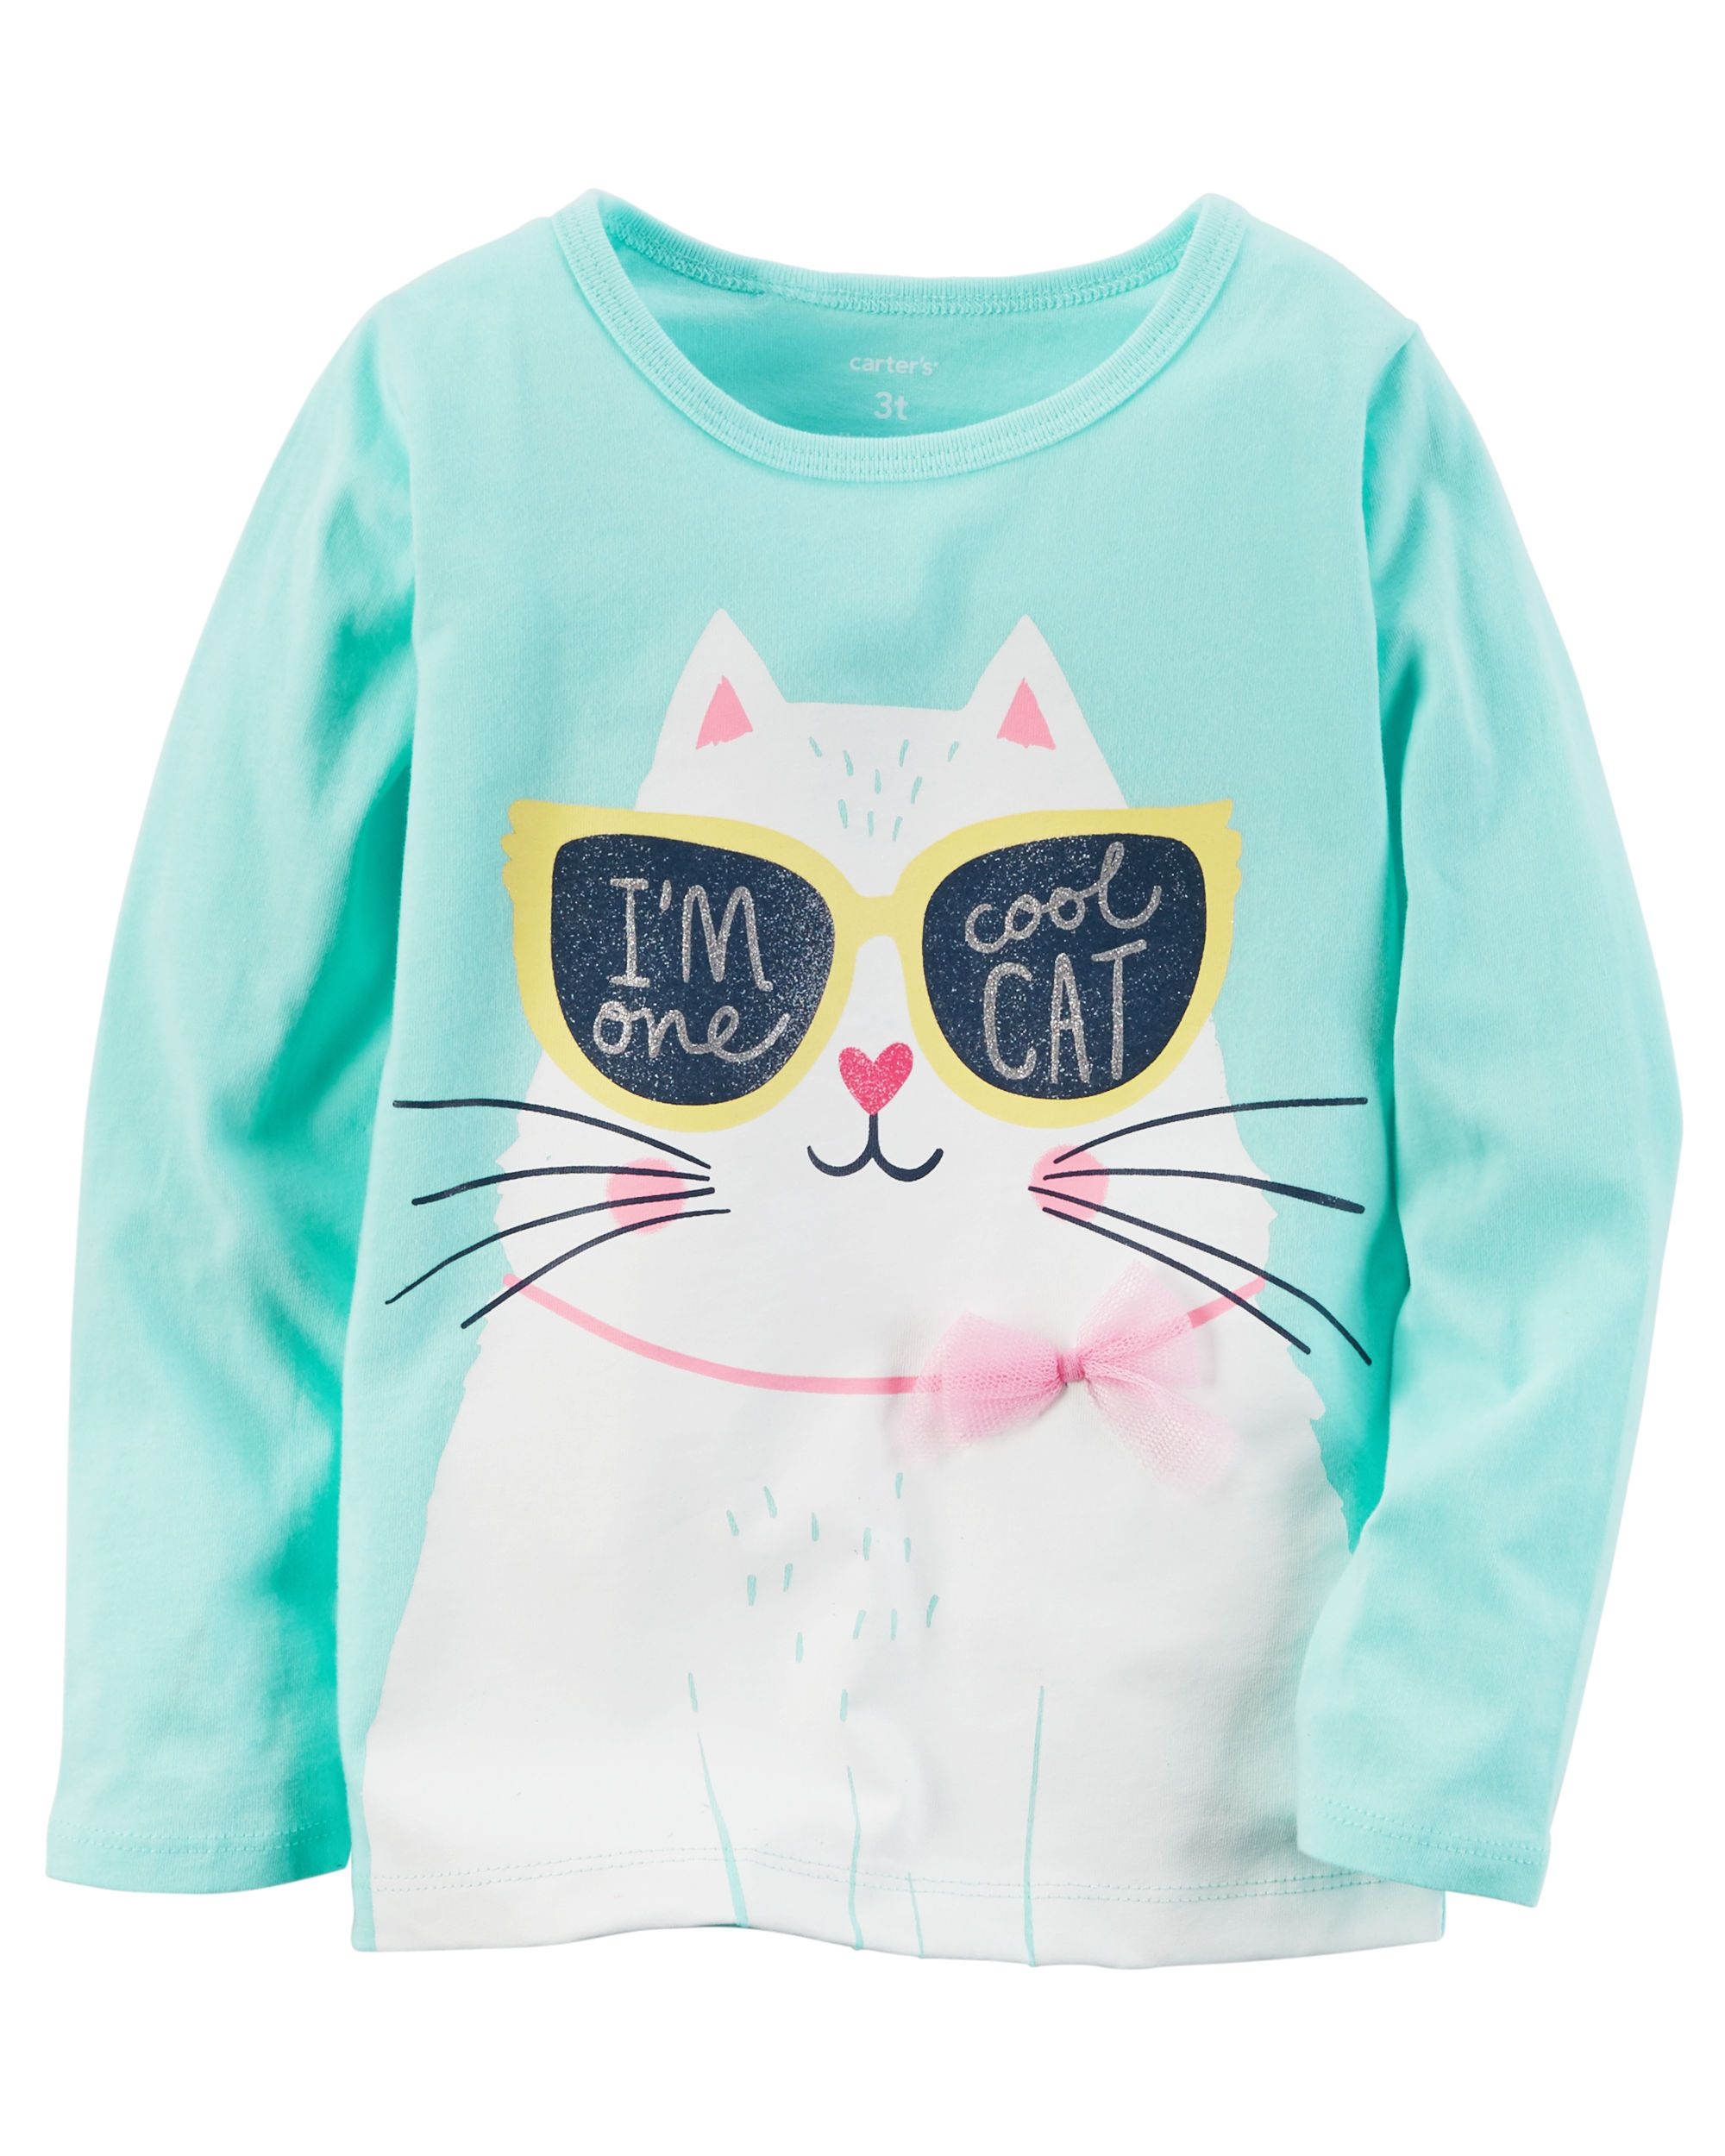 Long Sleeve e Cool Cat Graphic Tee